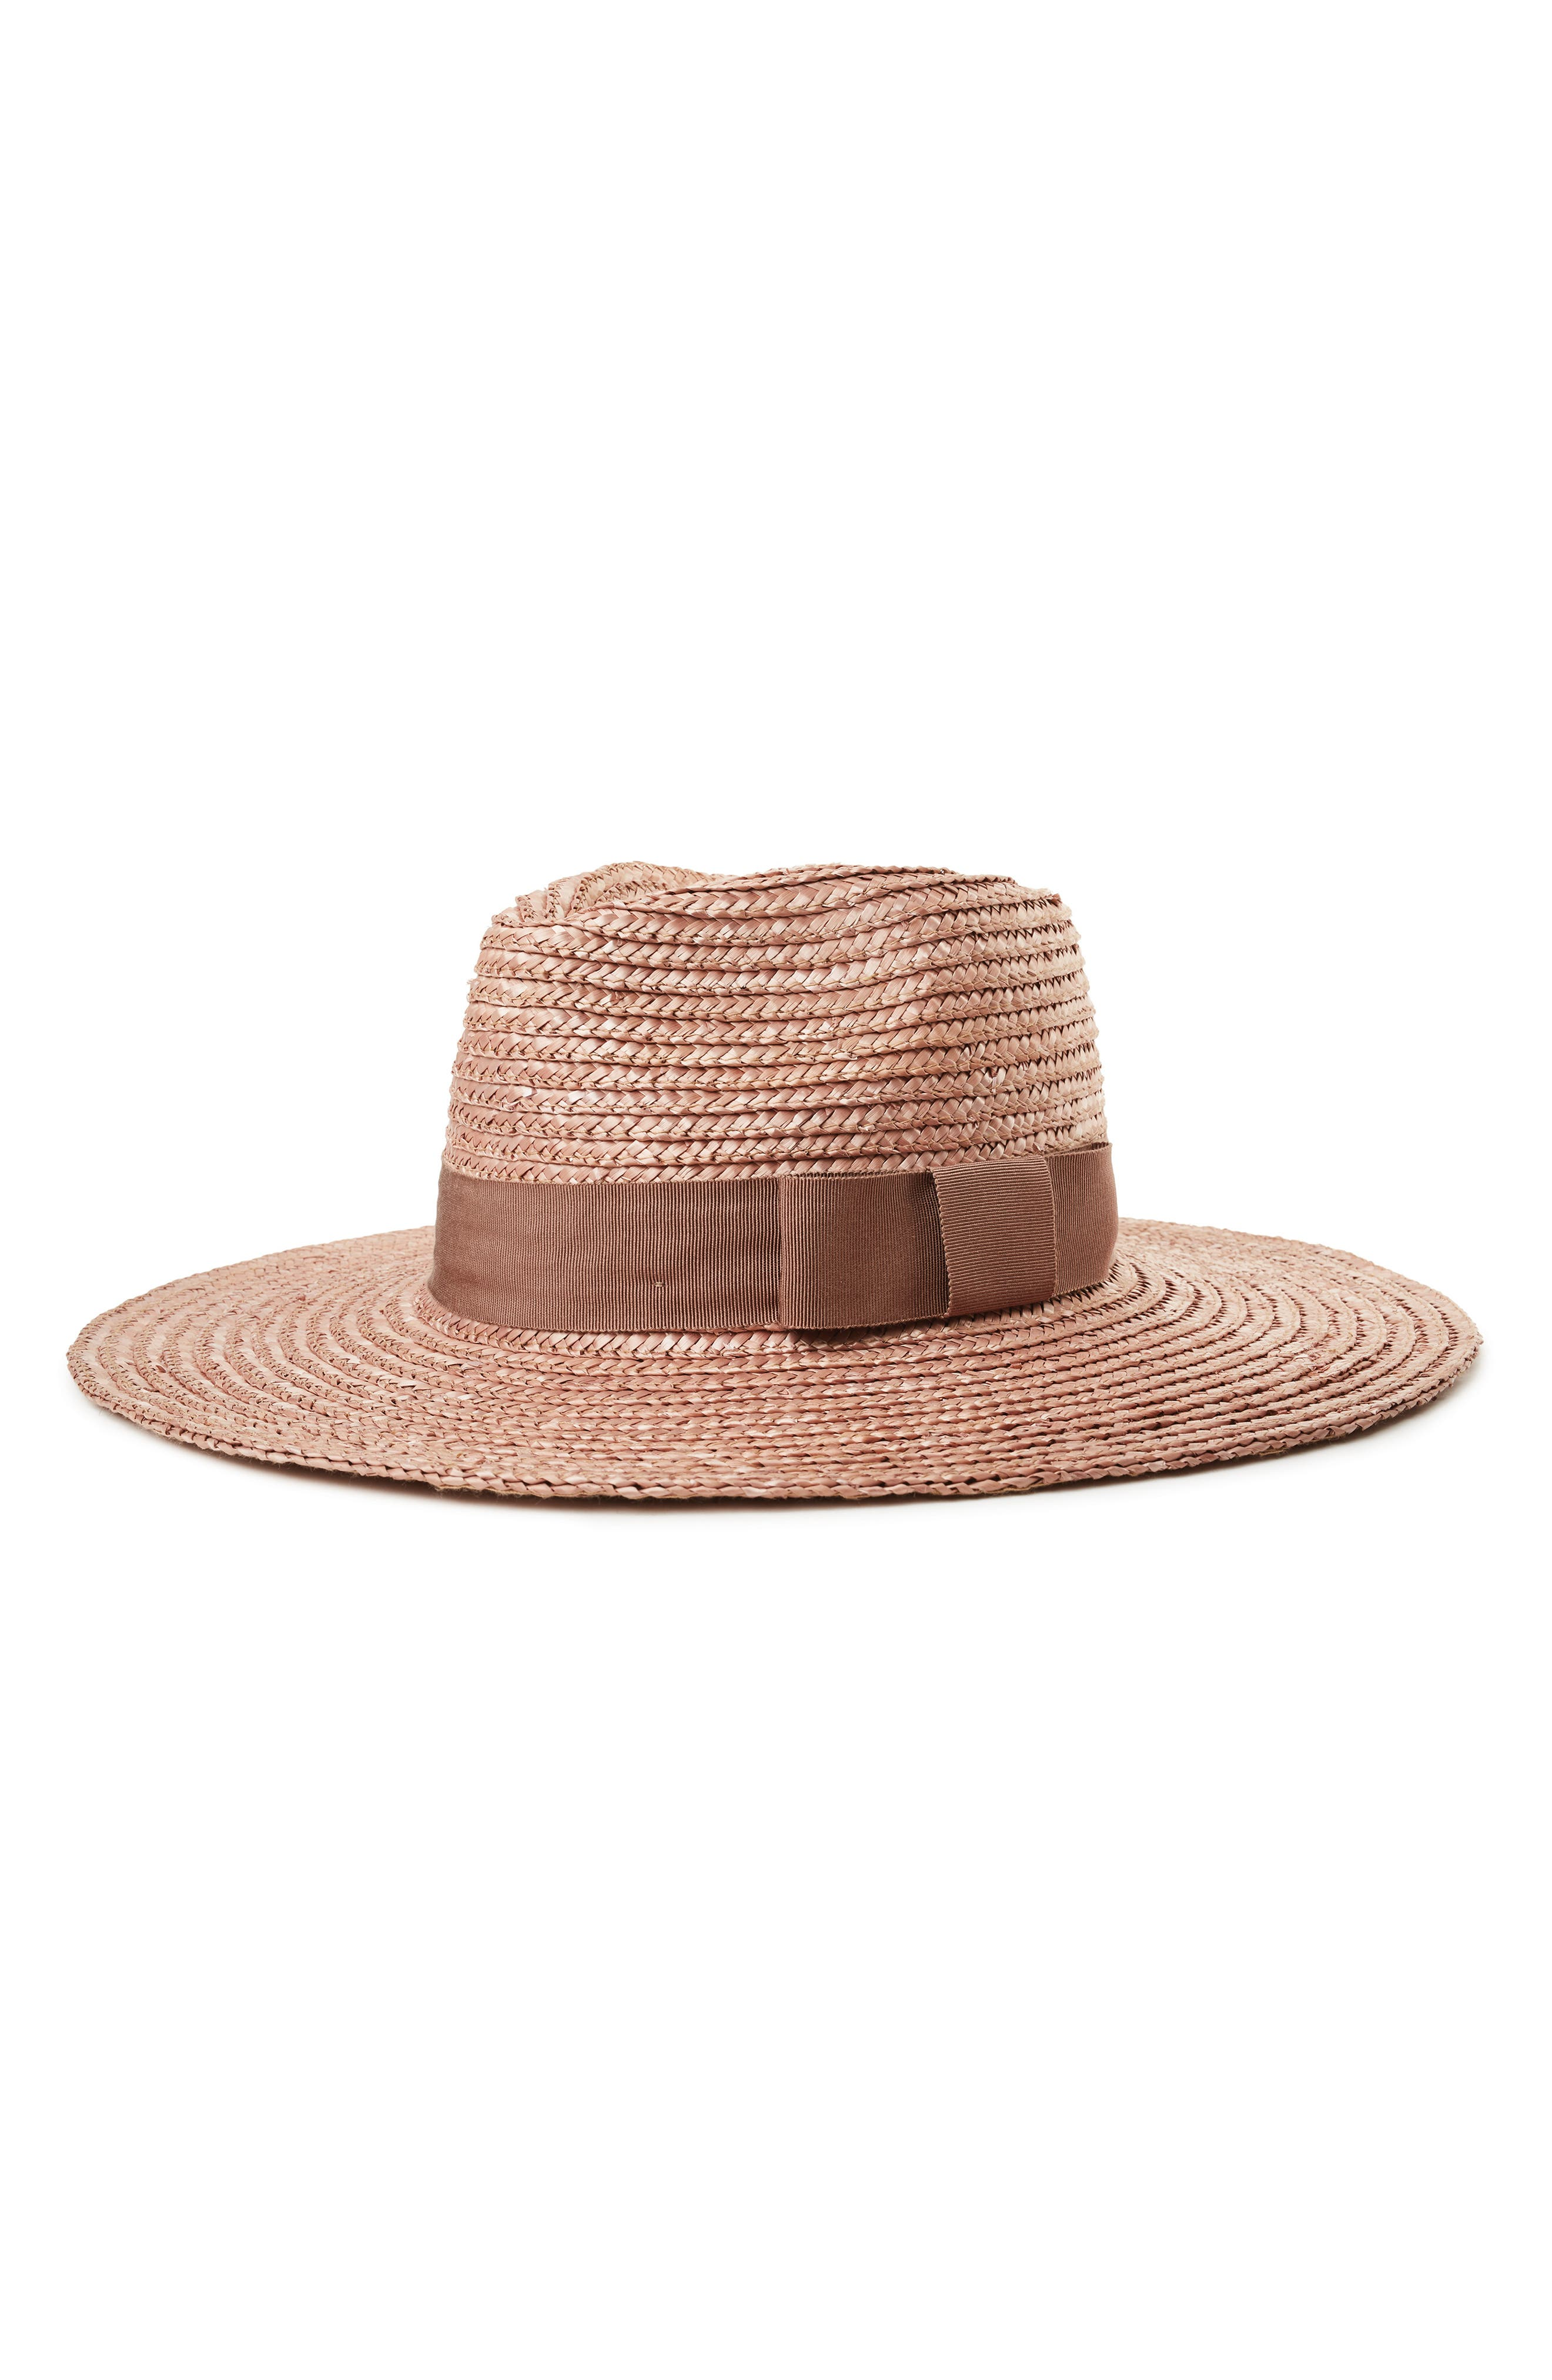 BRIXTON 'Joanna' Straw Hat, Main, color, LILAC